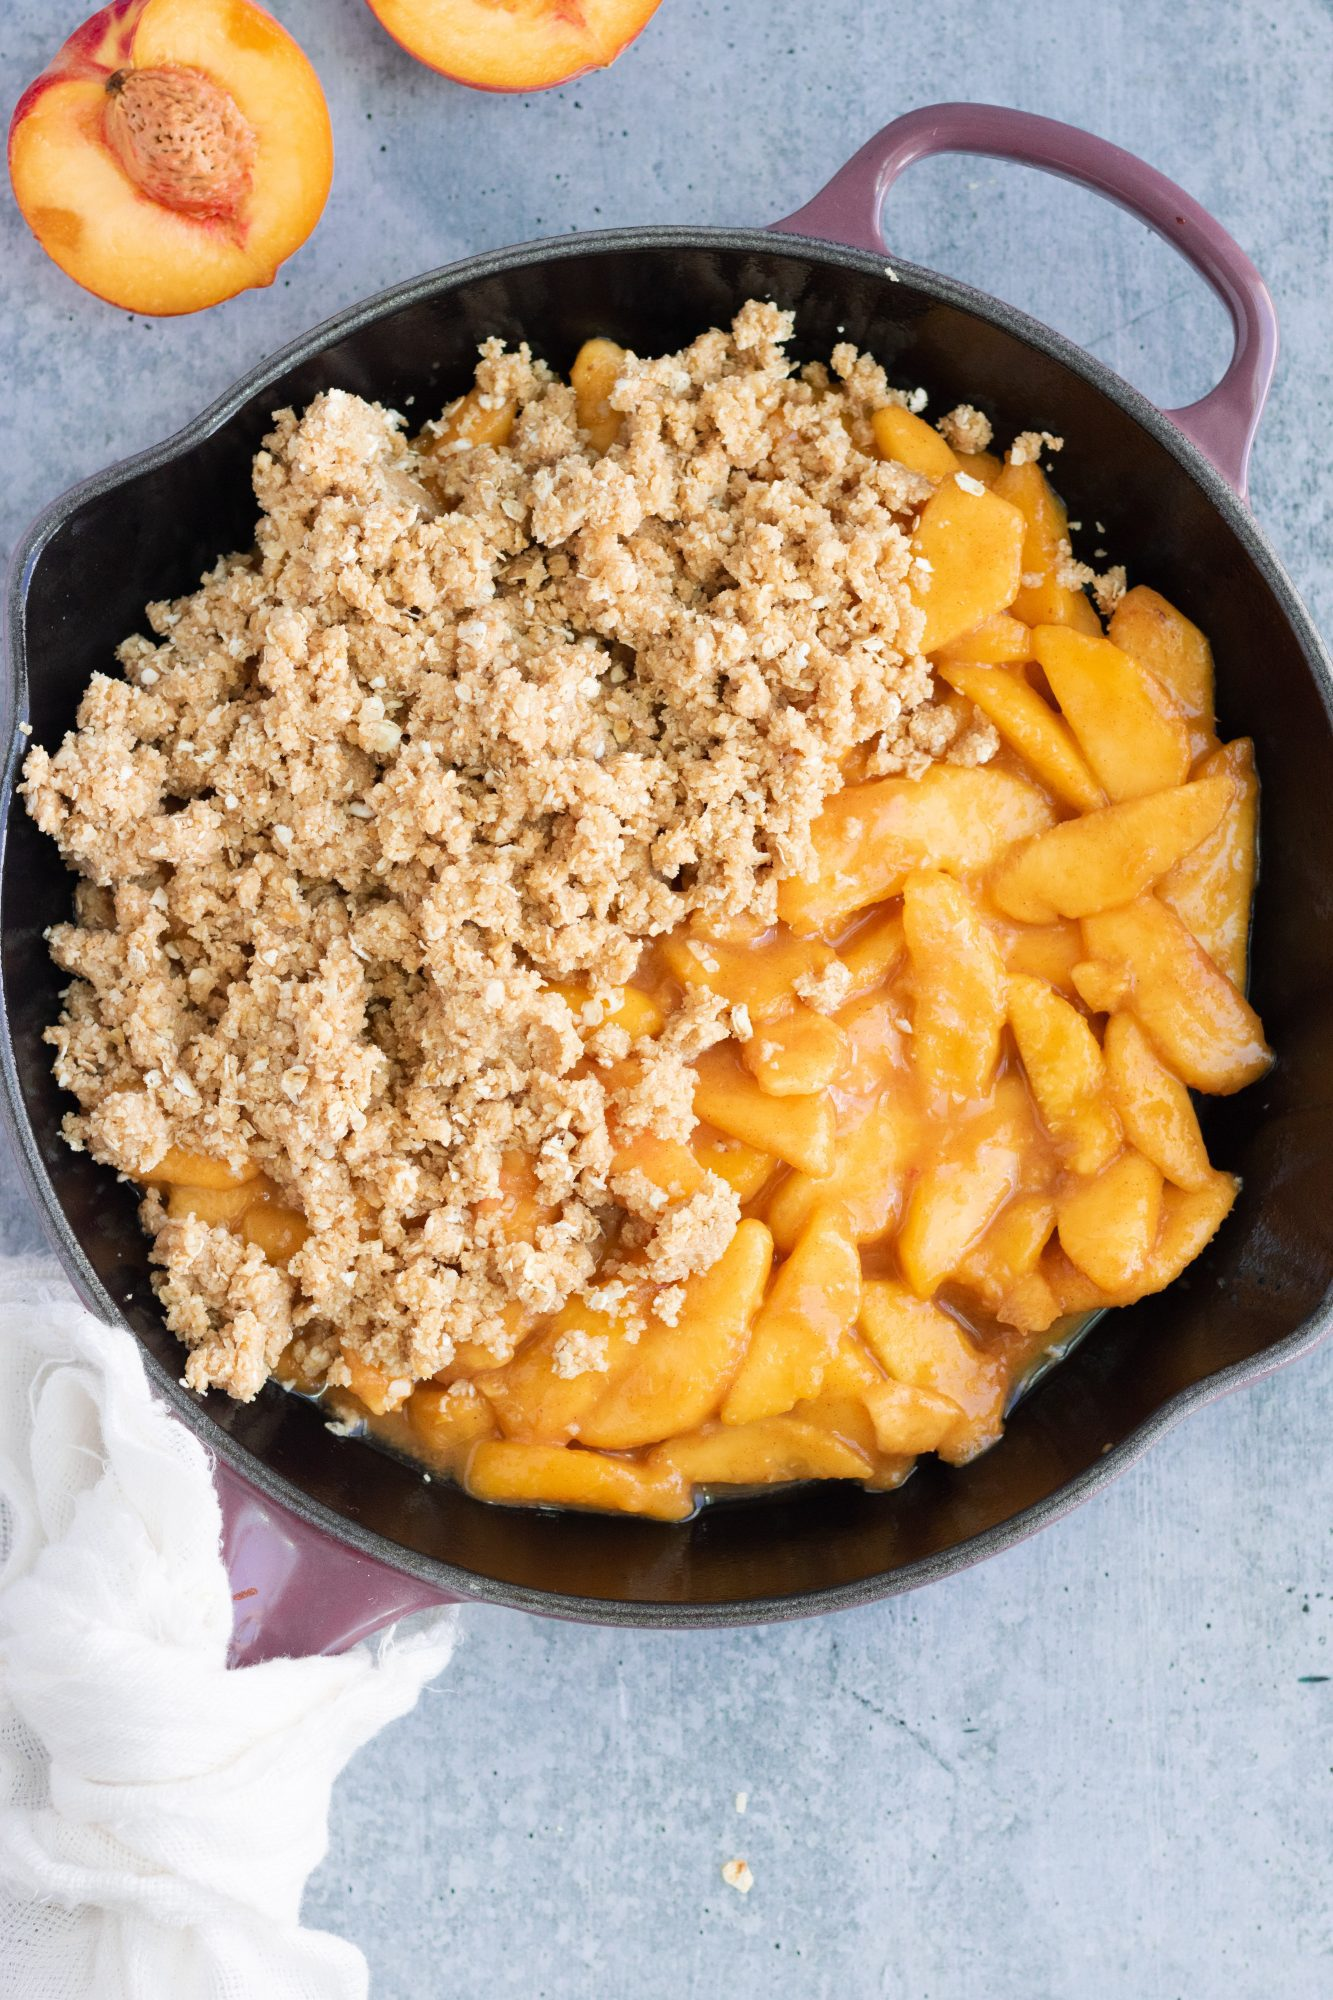 Peaches and cobbler topping in skillet before cooked